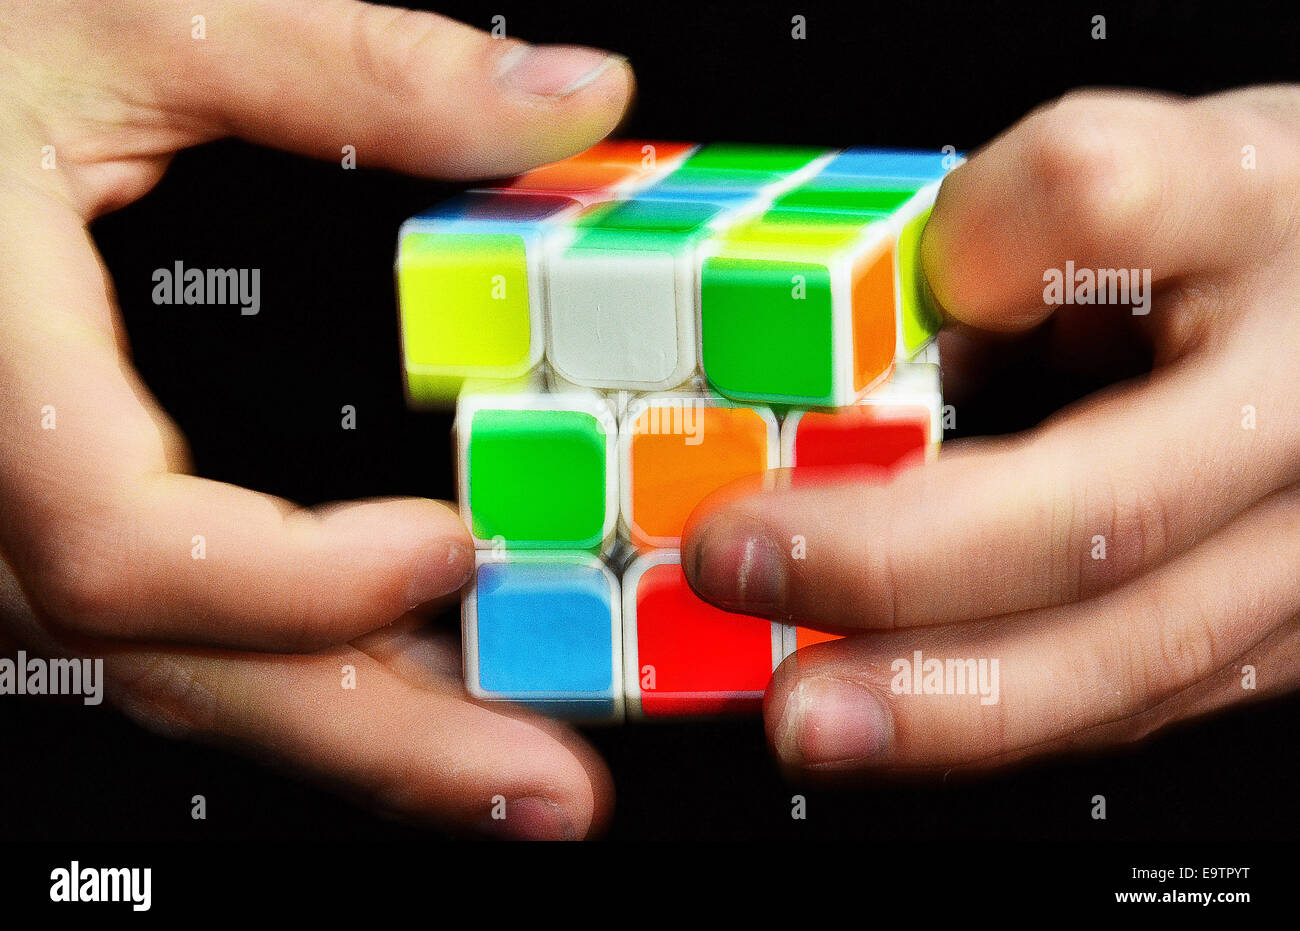 Rubik's Cube Montreal Cube Event Stock Photos Cube Event Stock Images Alamy